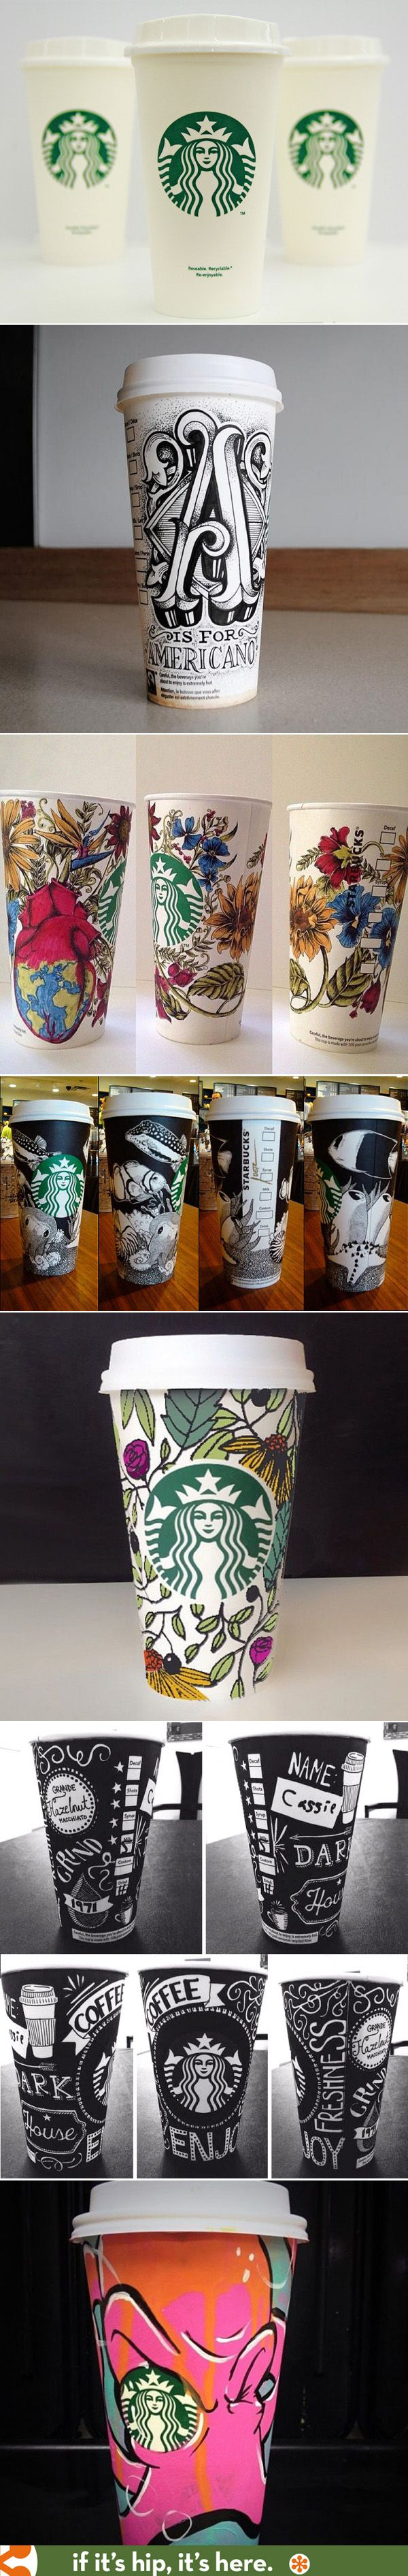 Although these didn't win, these are my picks for the best Starbucks White Cup Contest. Learn about the artists at the link.